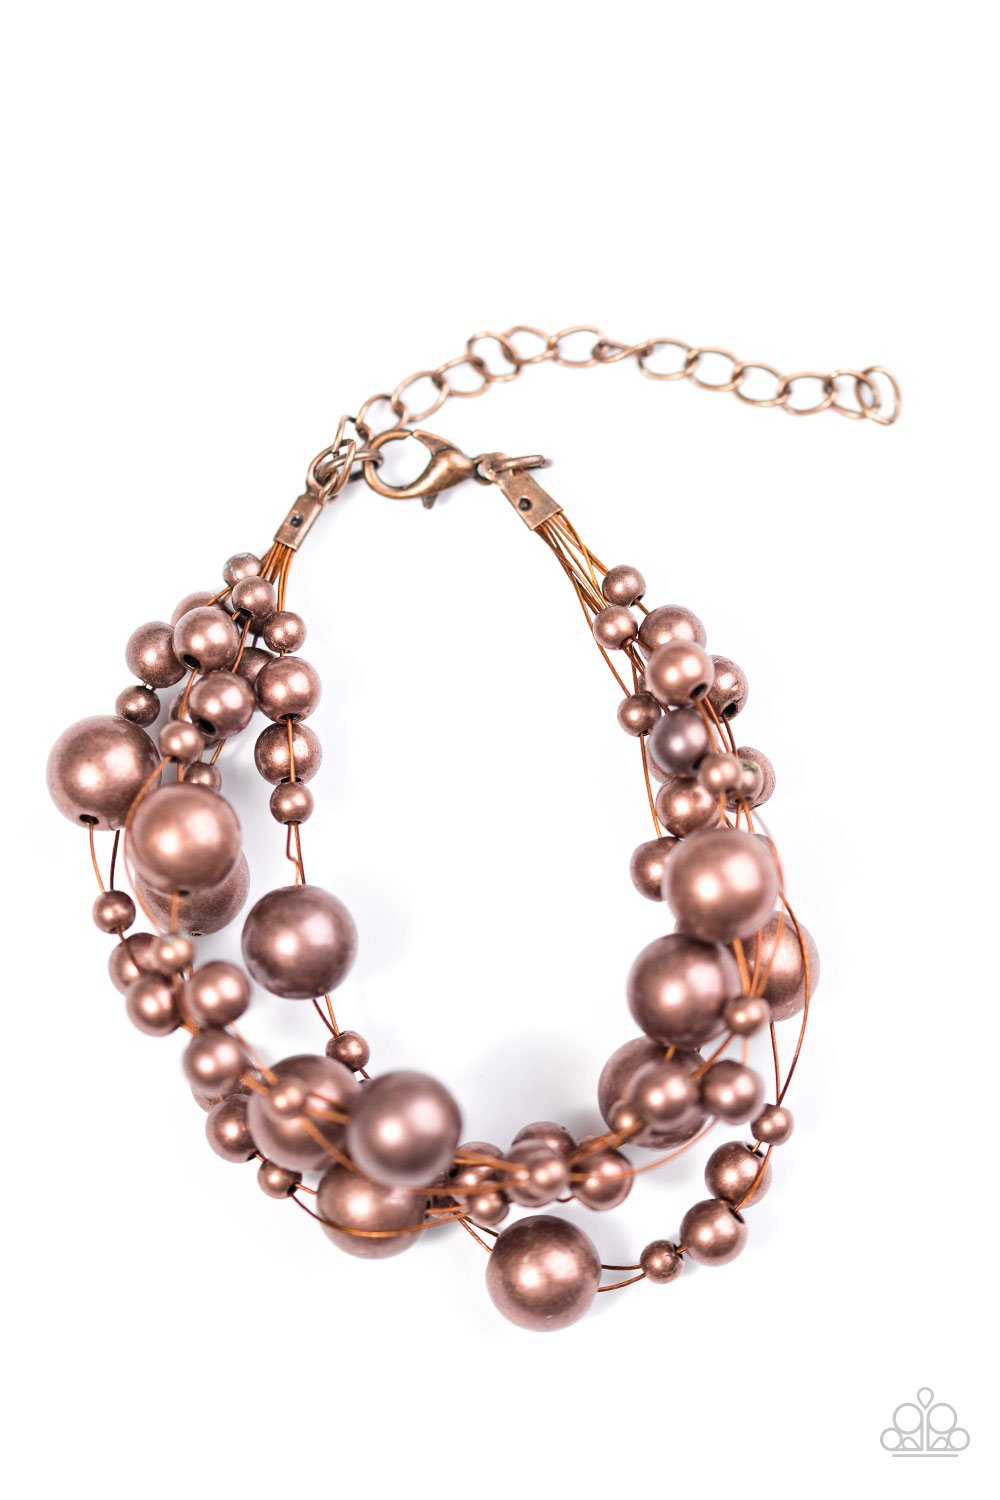 Feeling Fabulous - Copper - Paparazzi Accessories - Pretty Girl Jewels